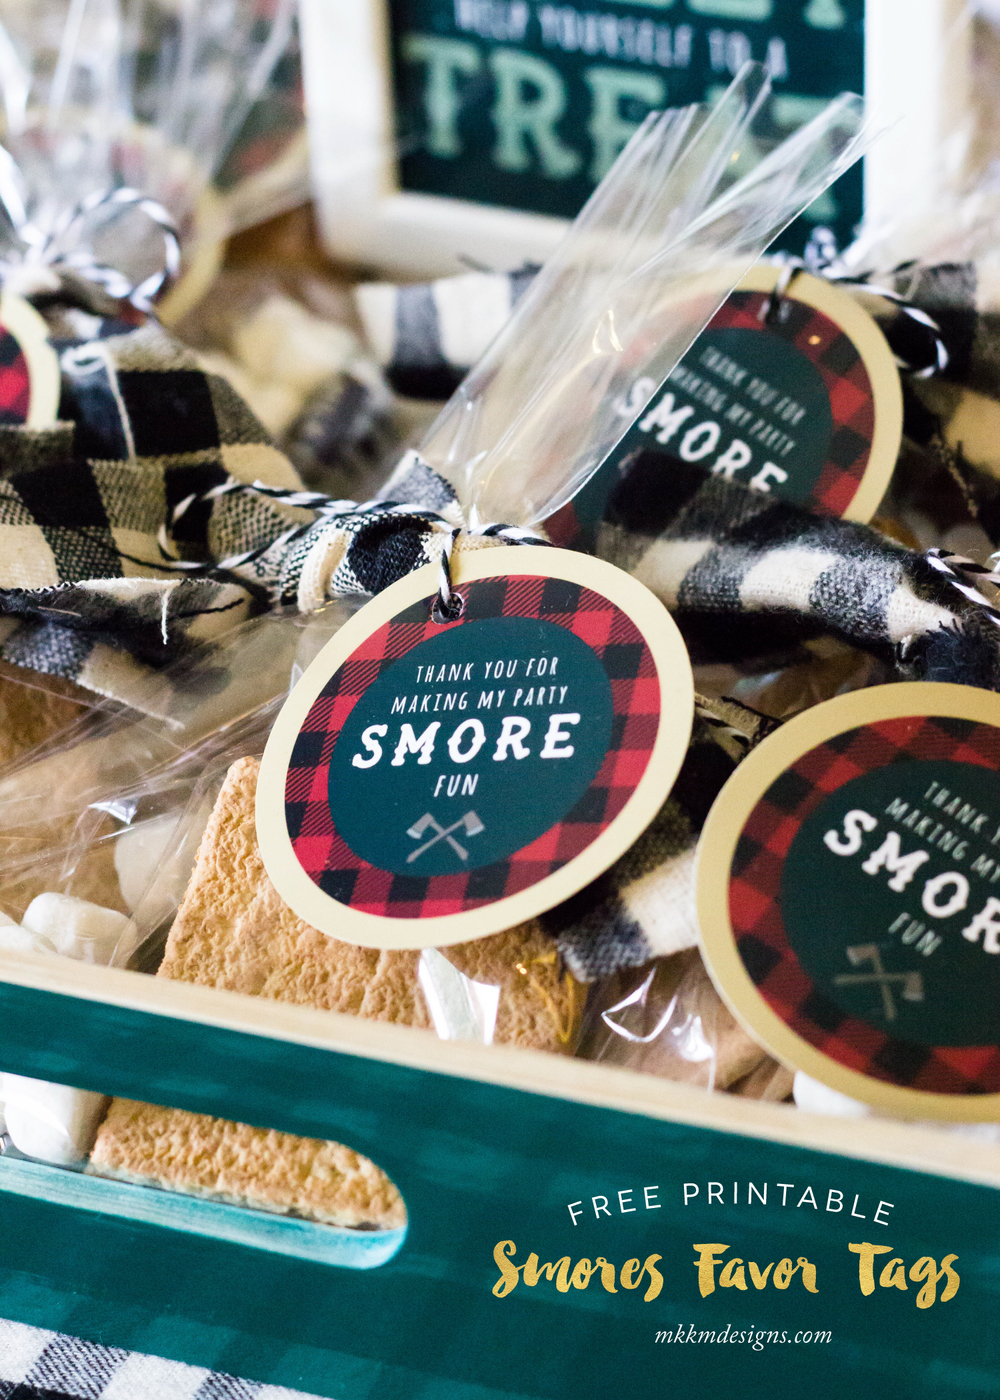 Free Printable Smores Favor Tags | MKKM Designs